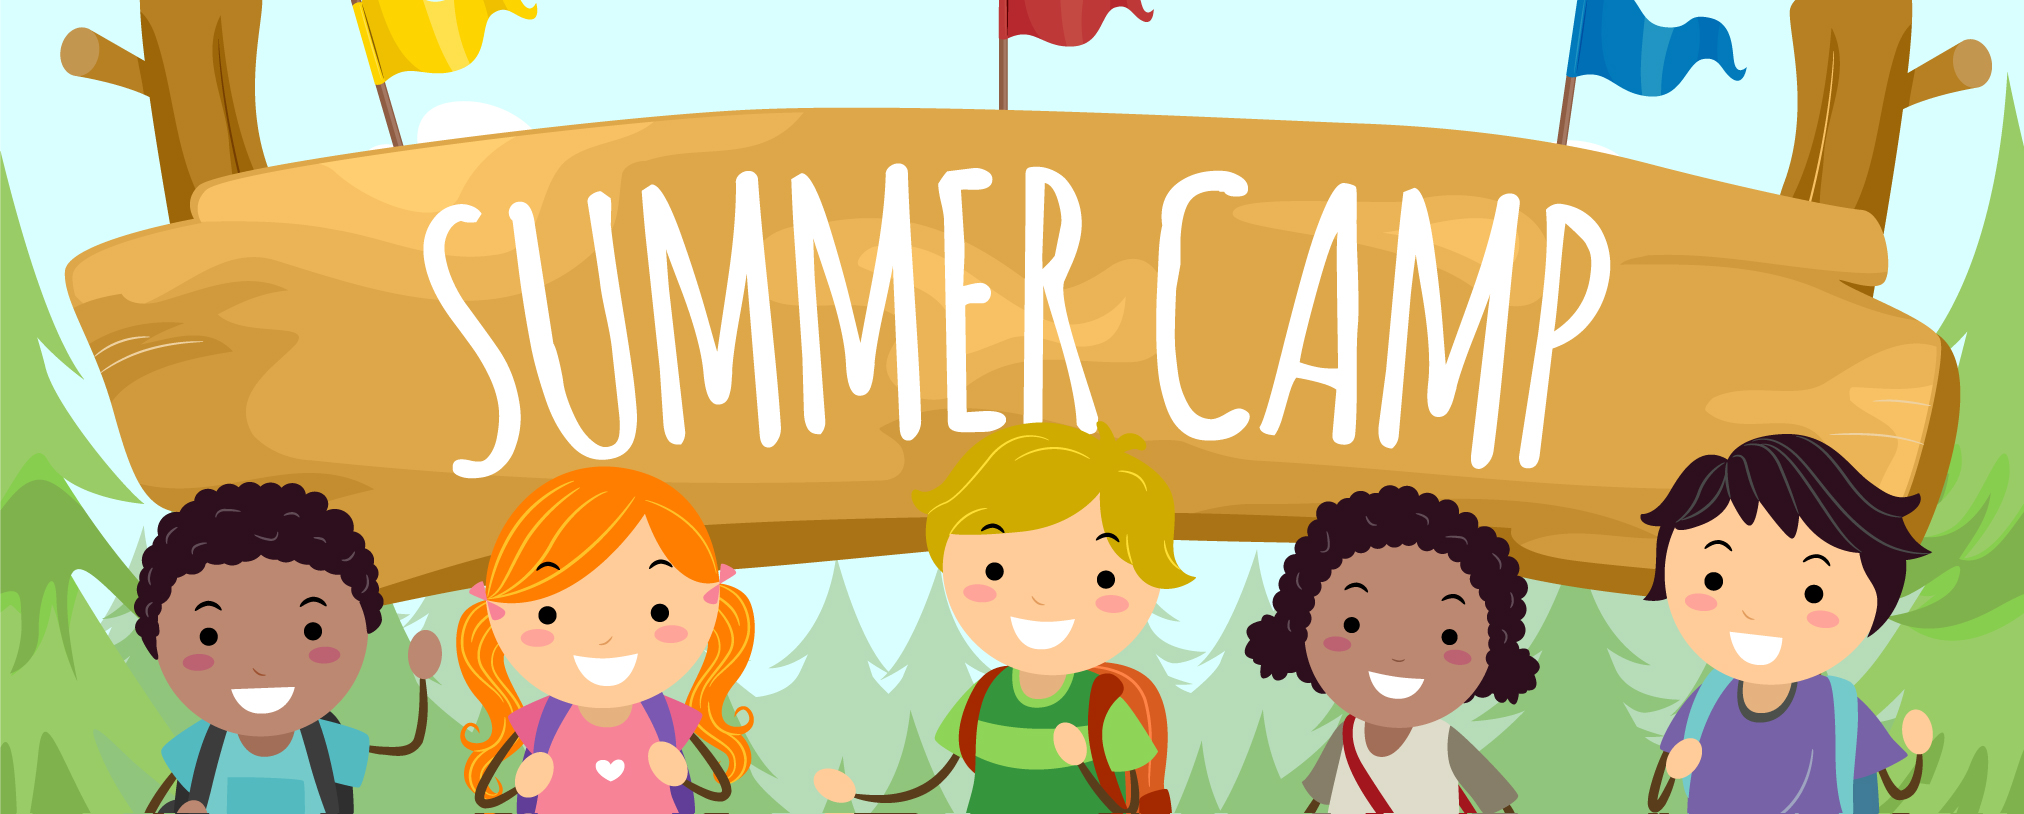 Summer-camps-2024-0319